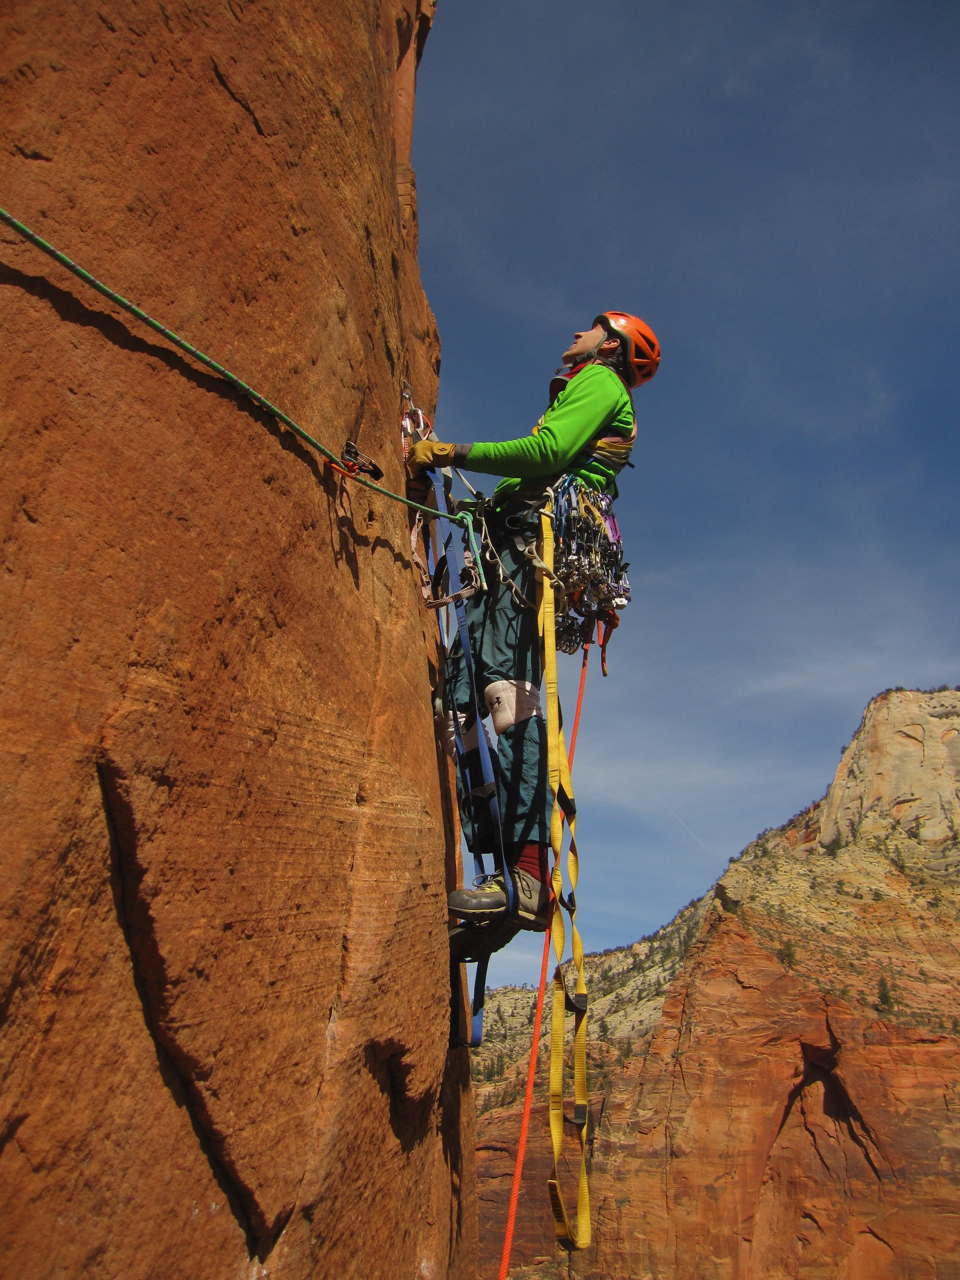 Don starts up the third pitch bolt ladder. This pitch has a few mandatory free moves, but goes pretty easily and quickly. The pitch traverses about 50 feet or more. If you are hauling a bag, be prepared to lower the bag out. After this pitch, the hauling is simple and easy for the rest of the route.